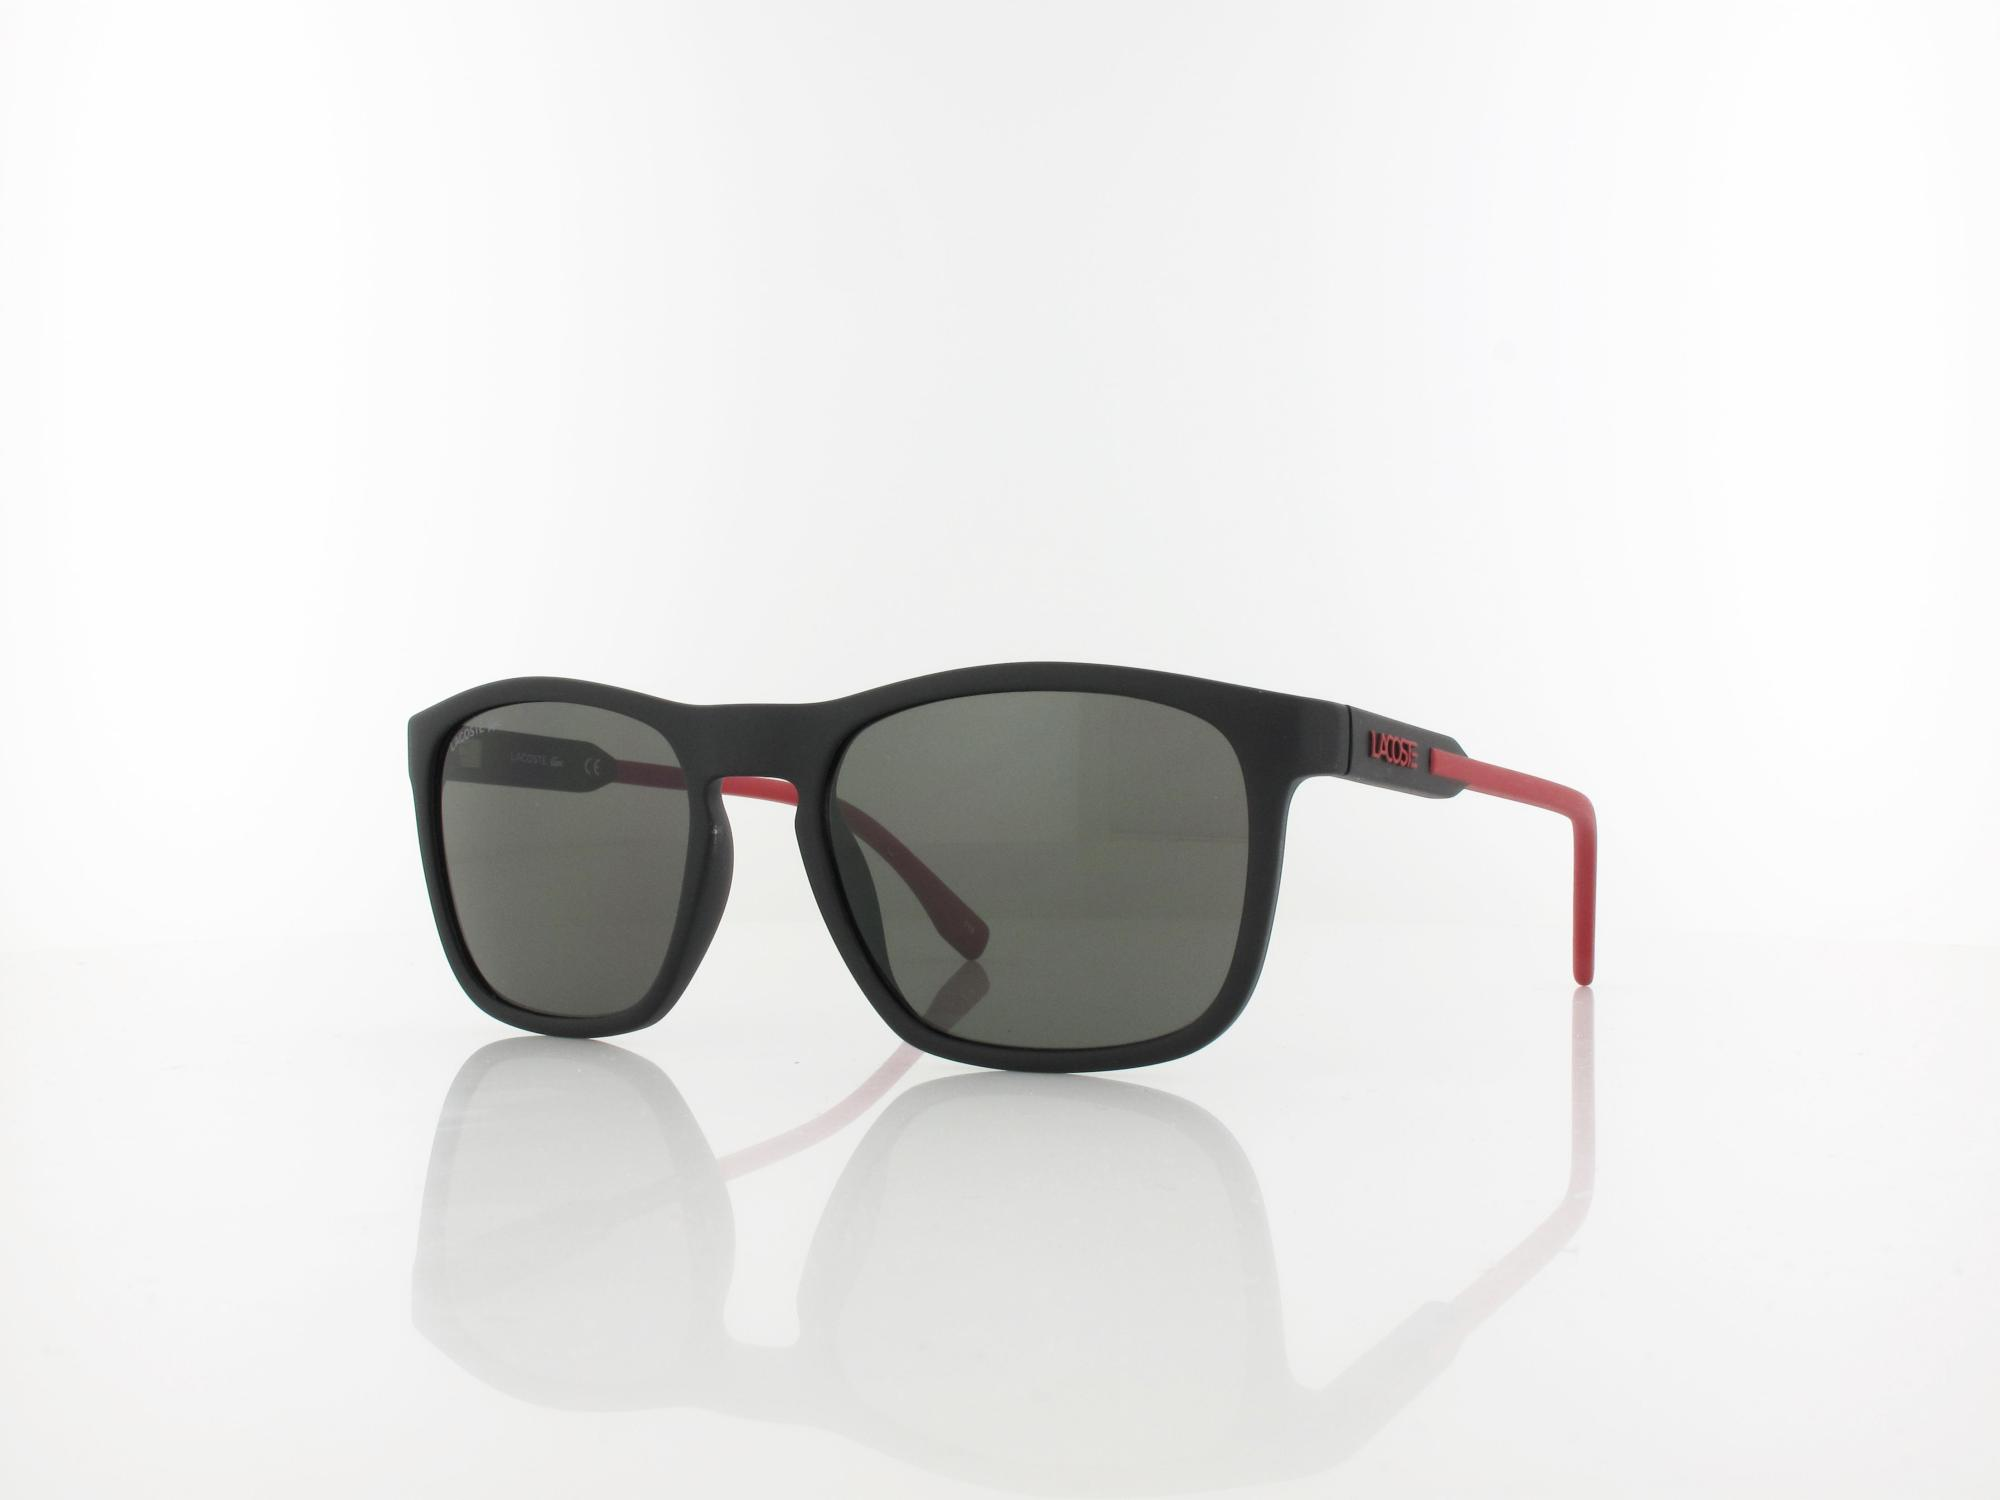 Lacoste | L604SND 004 54 | matte black red / grey